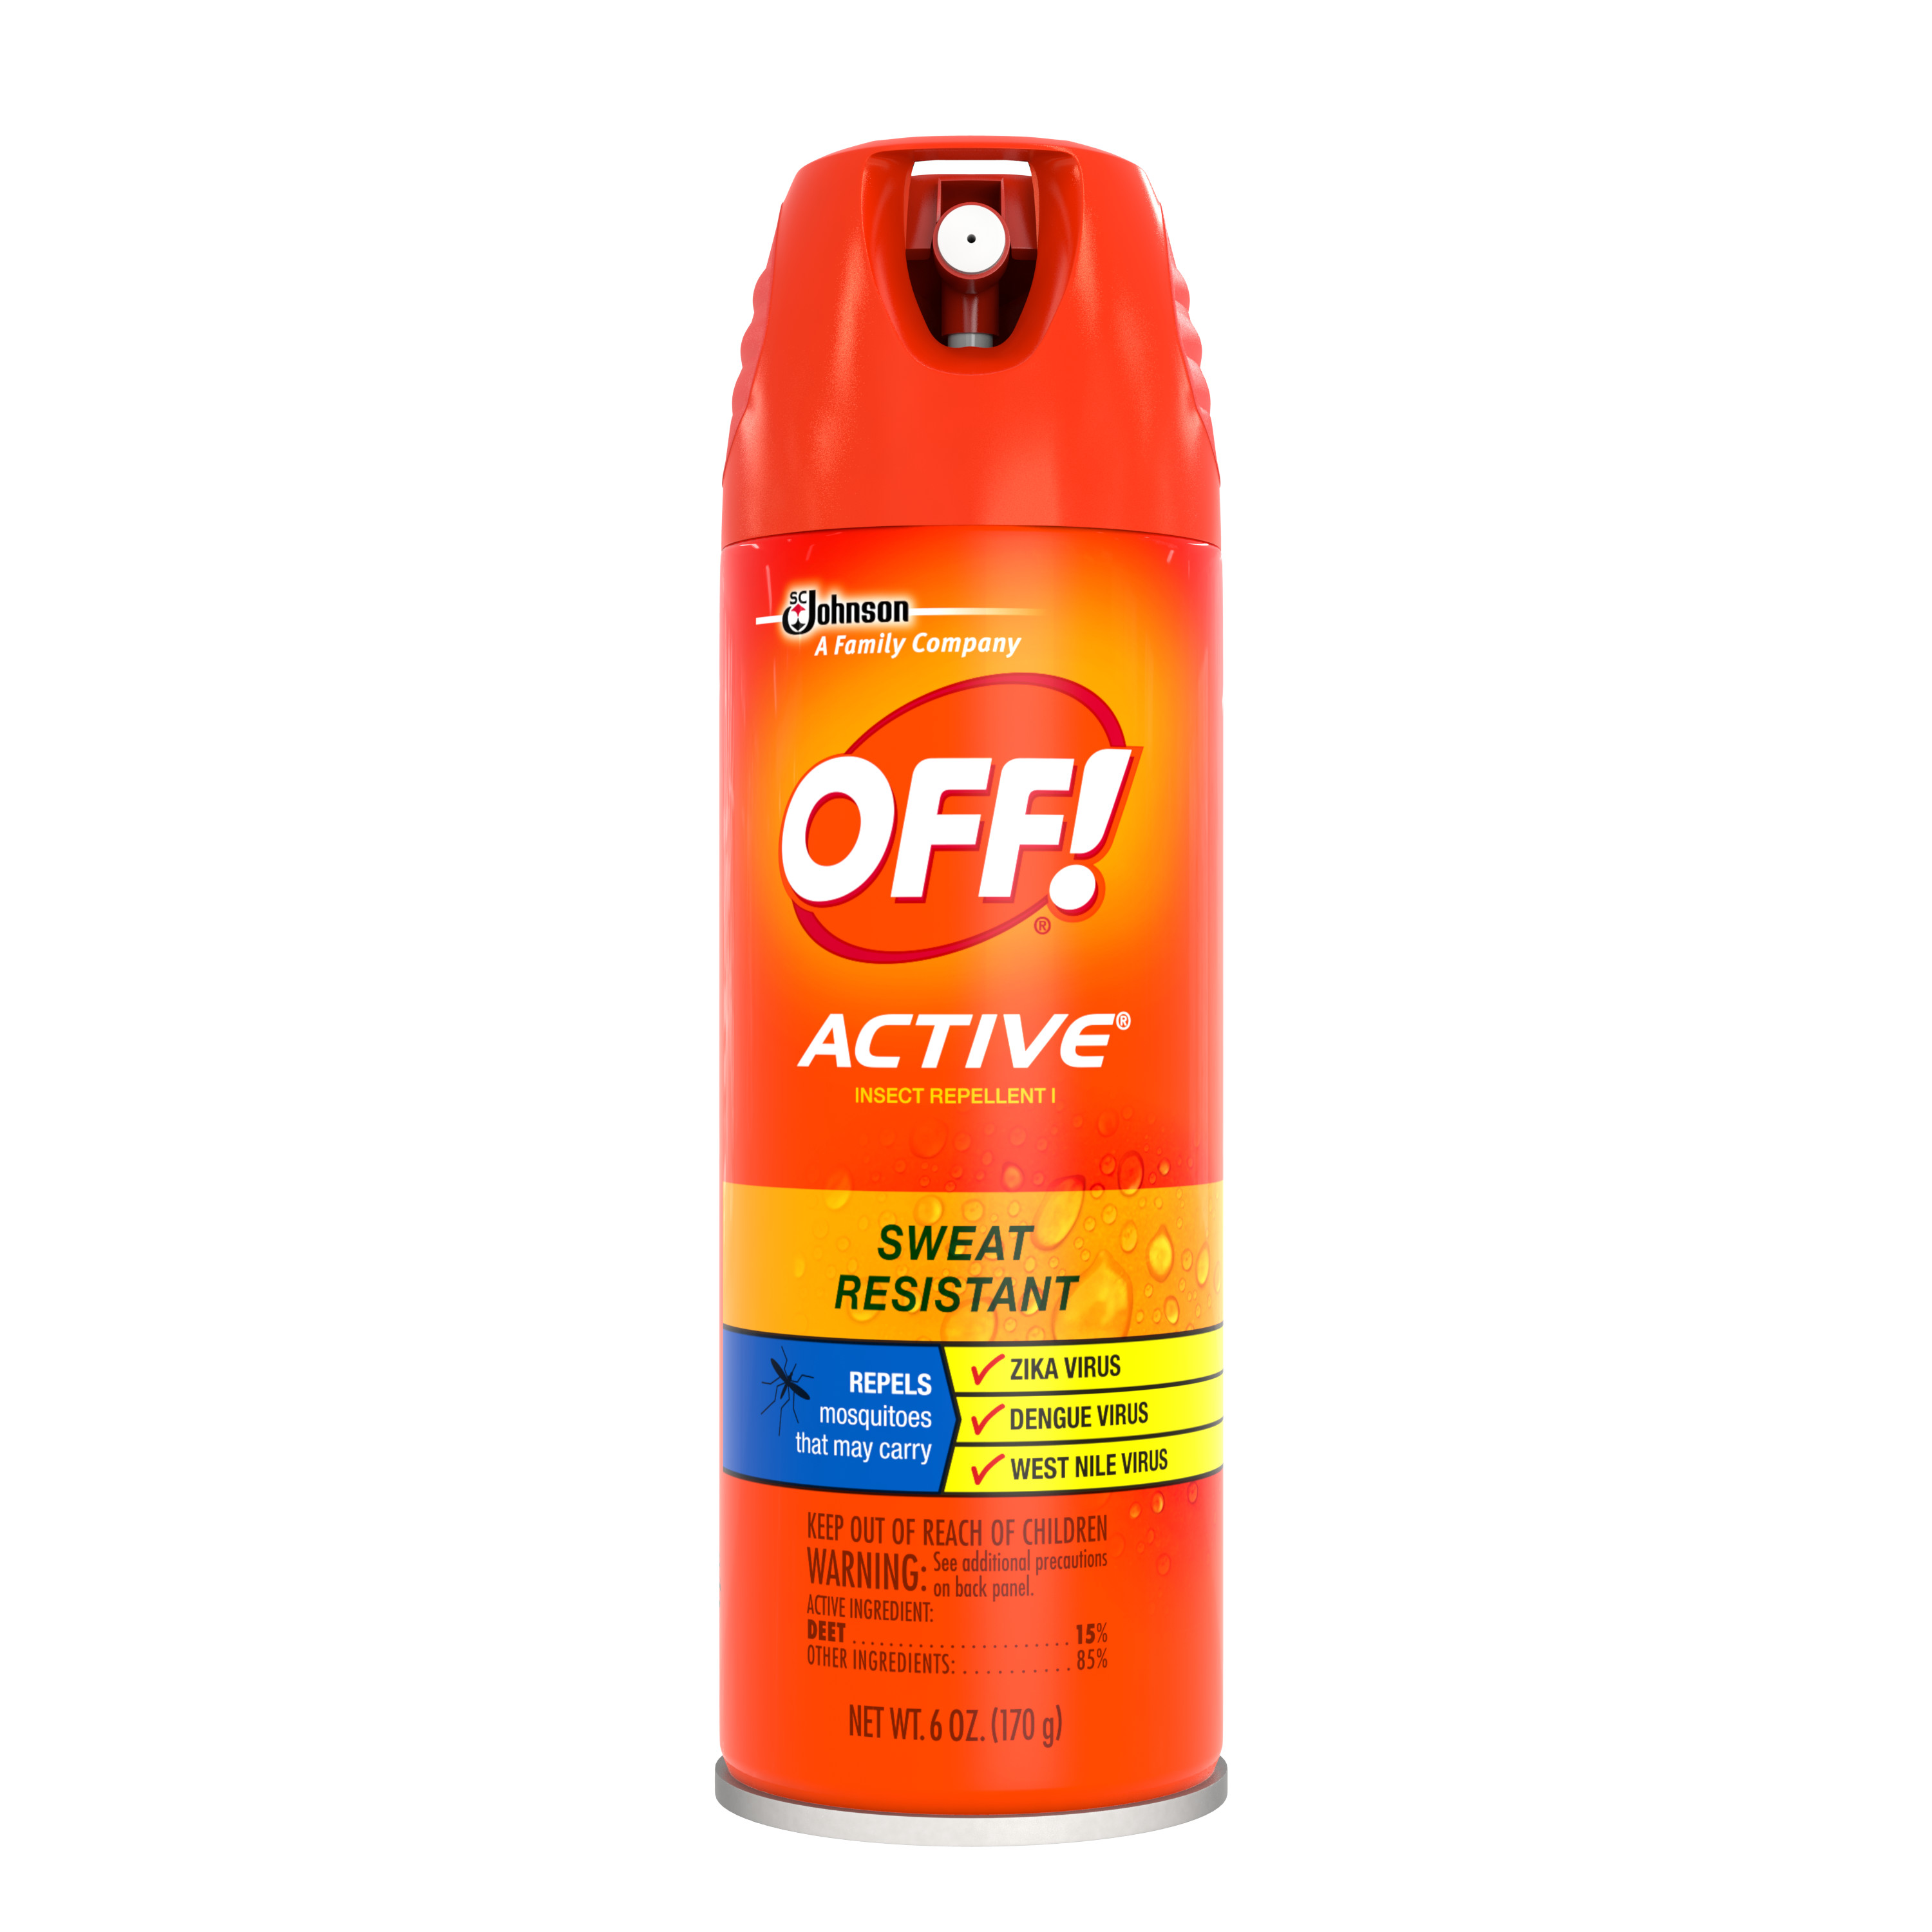 OFF! Active Insect Repellent I, 6 Ounces